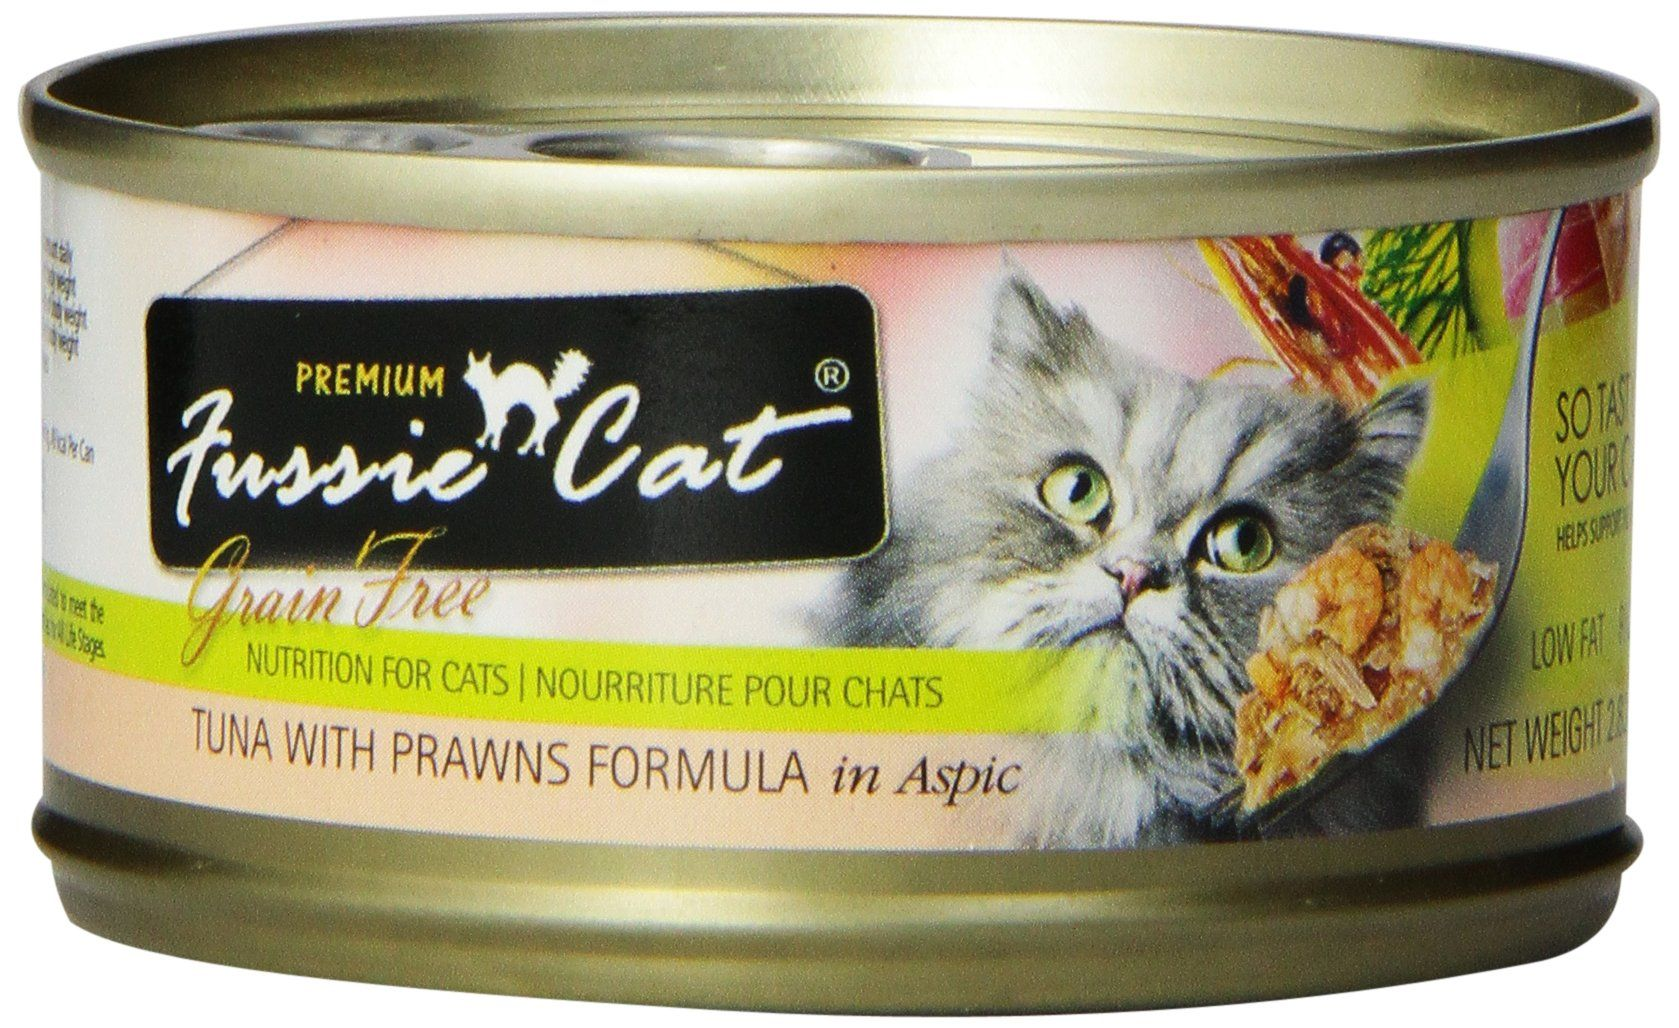 Fussie Cat Premium Tuna with Prawns Cat Food 24 2.82oz